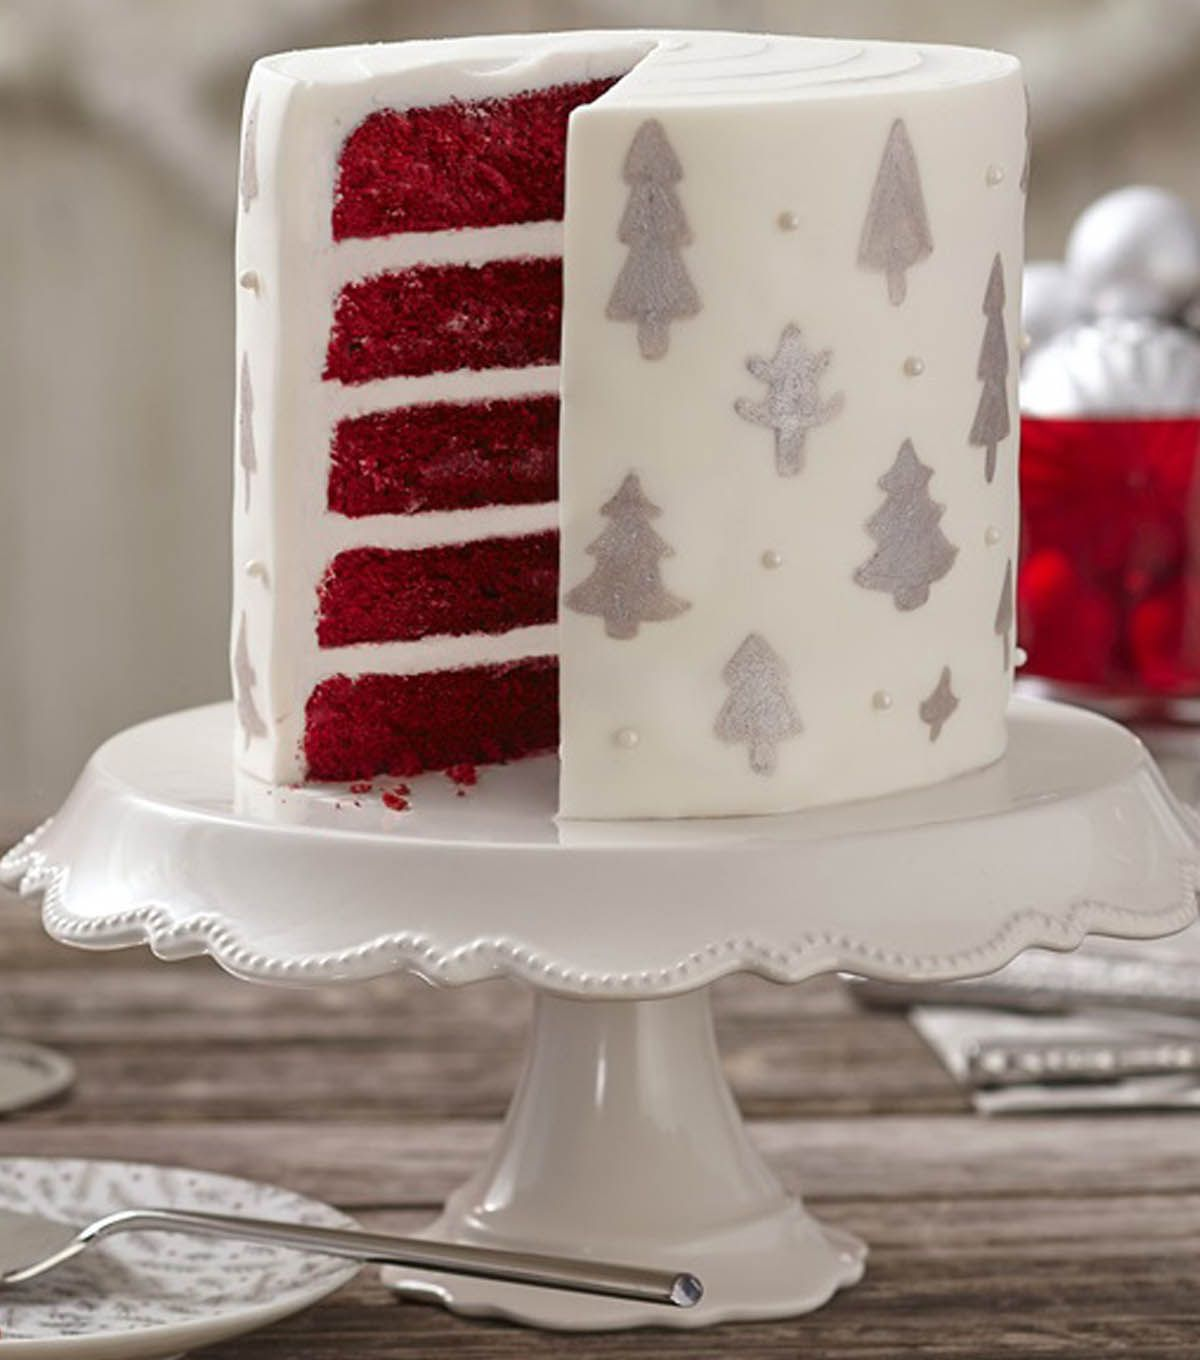 Learn How To Make A Silver Bells Christmas Tree Cake With Wilton